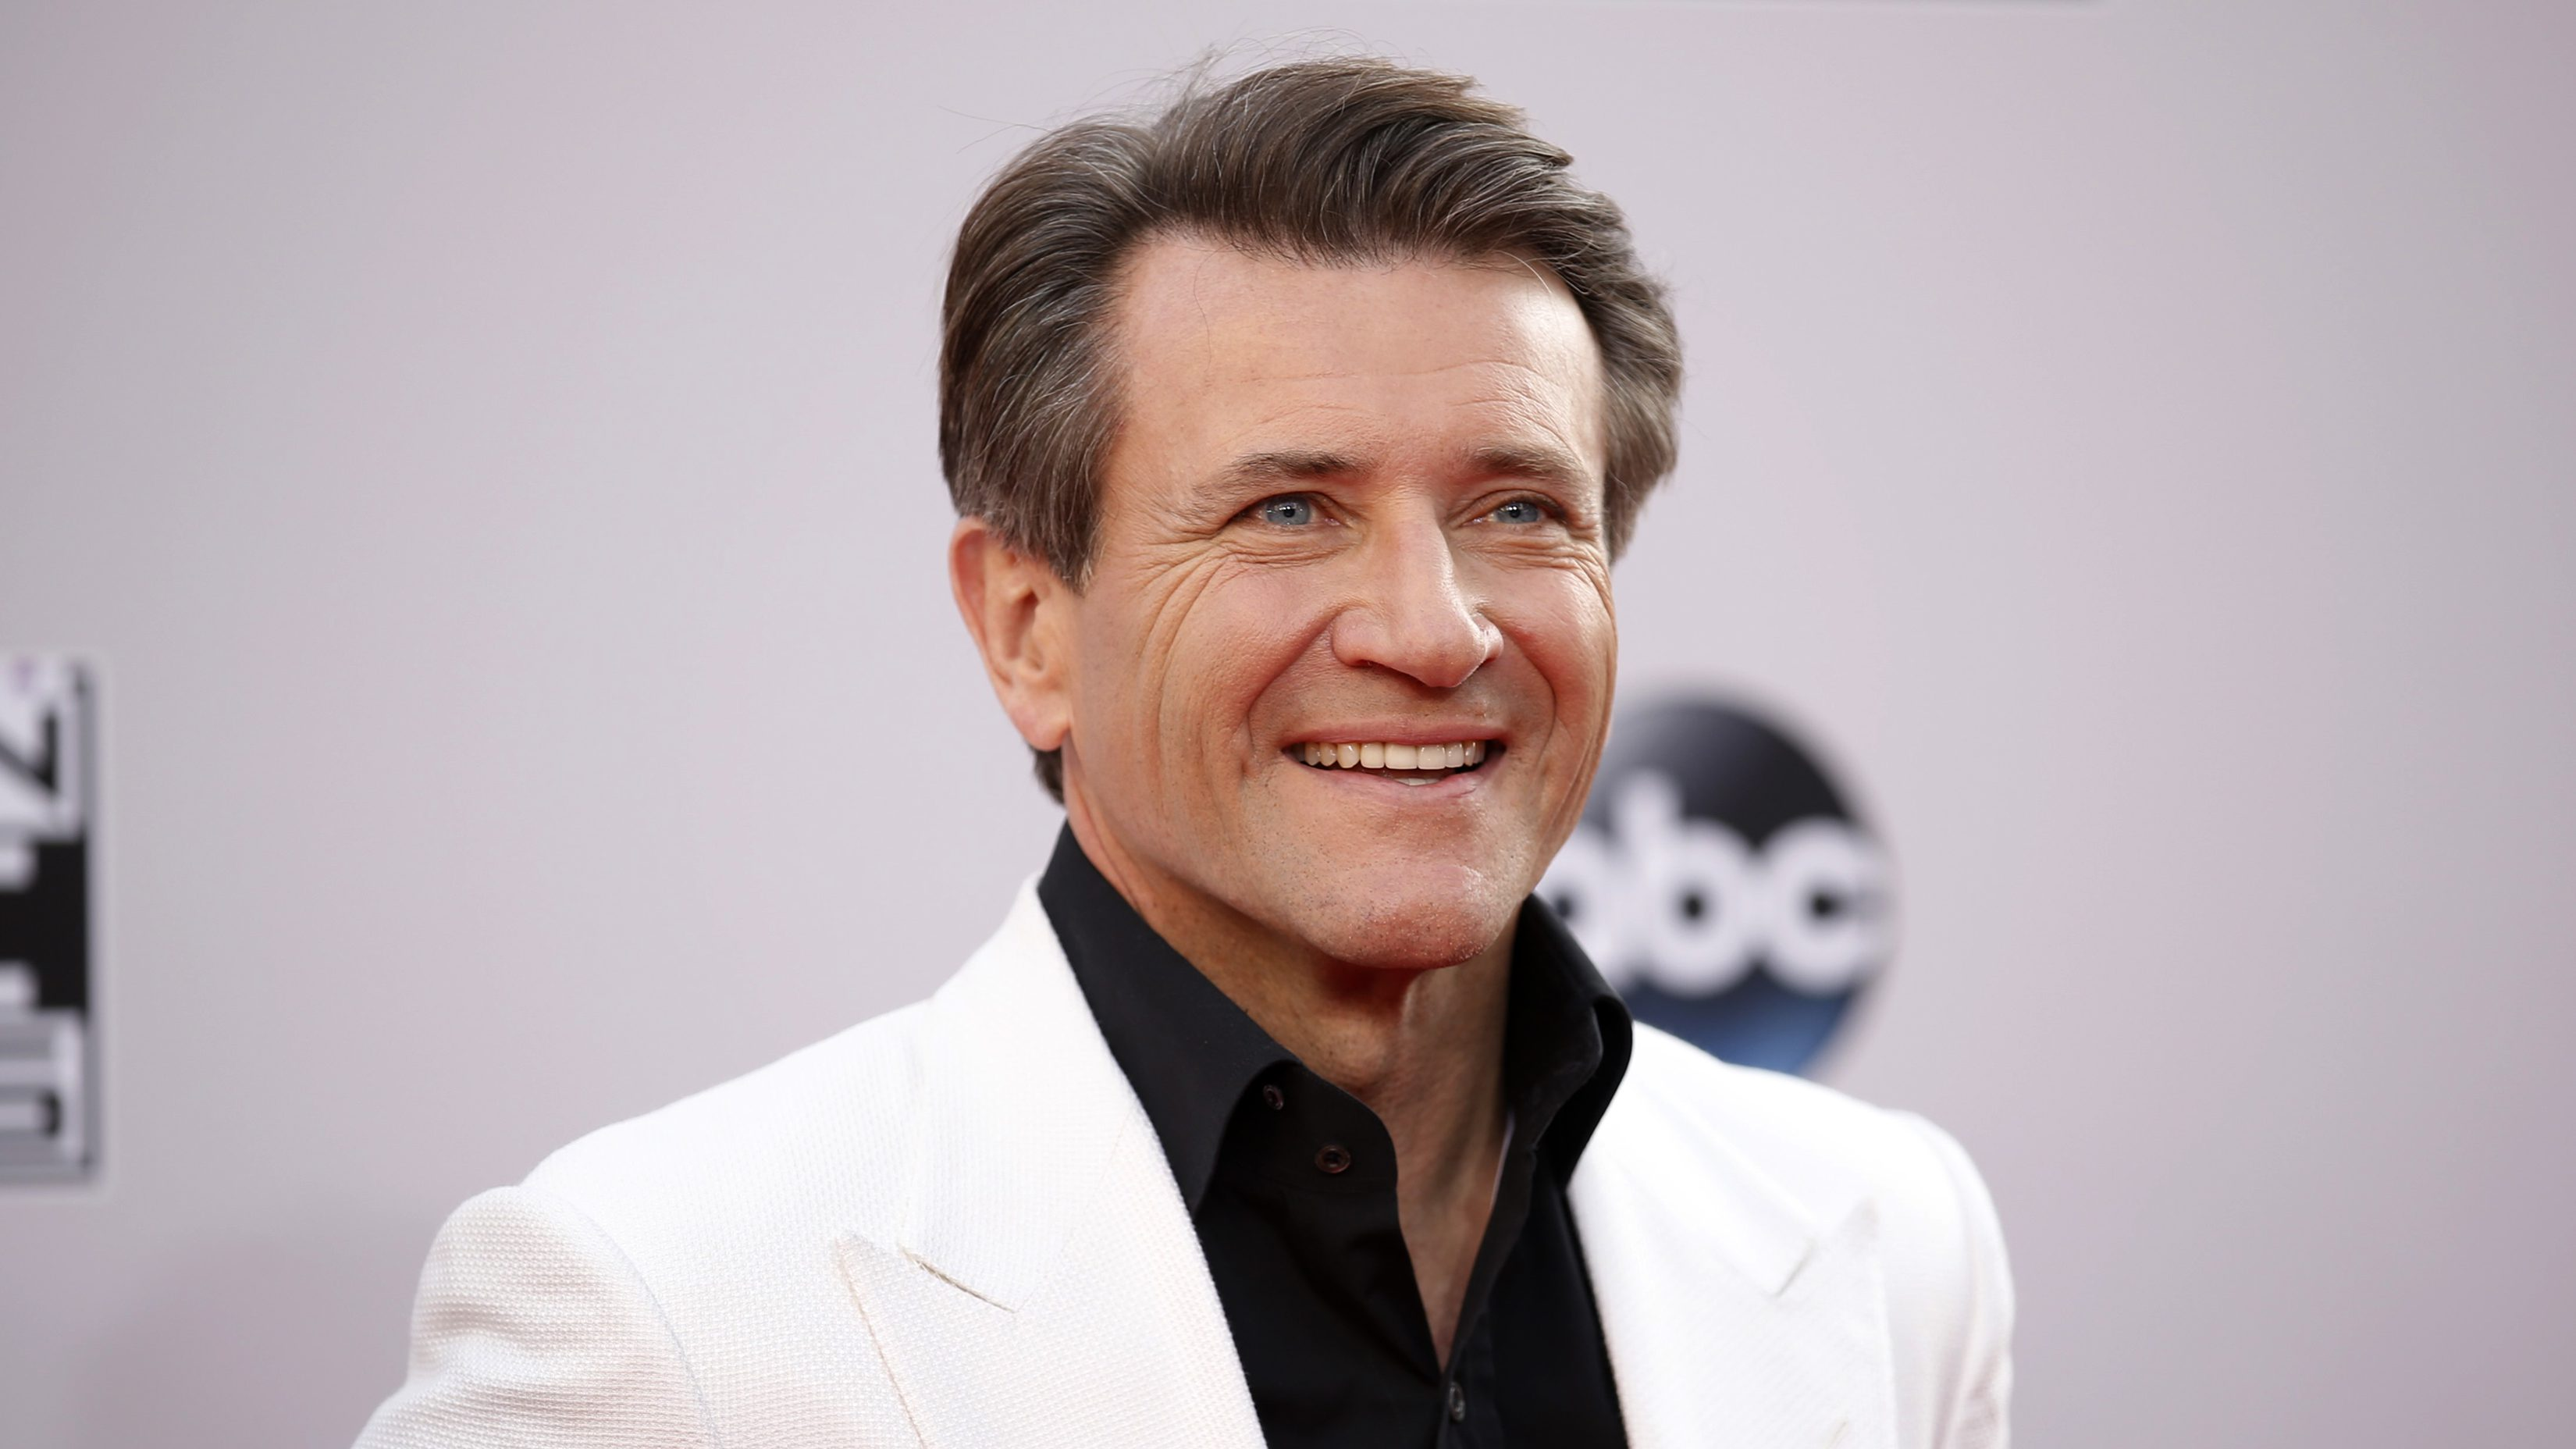 """Robert Herjavec, from the reality show """"Shark Tank,"""" arrives at the 42nd American Music Awards in Los Angeles, California November 23, 2014.   (UNITED STATES  - Tags: ENTERTAINMENT)   (MUSIC-AMERICANMUSICAWARDS-ARRIVALS) - RTR4F984"""